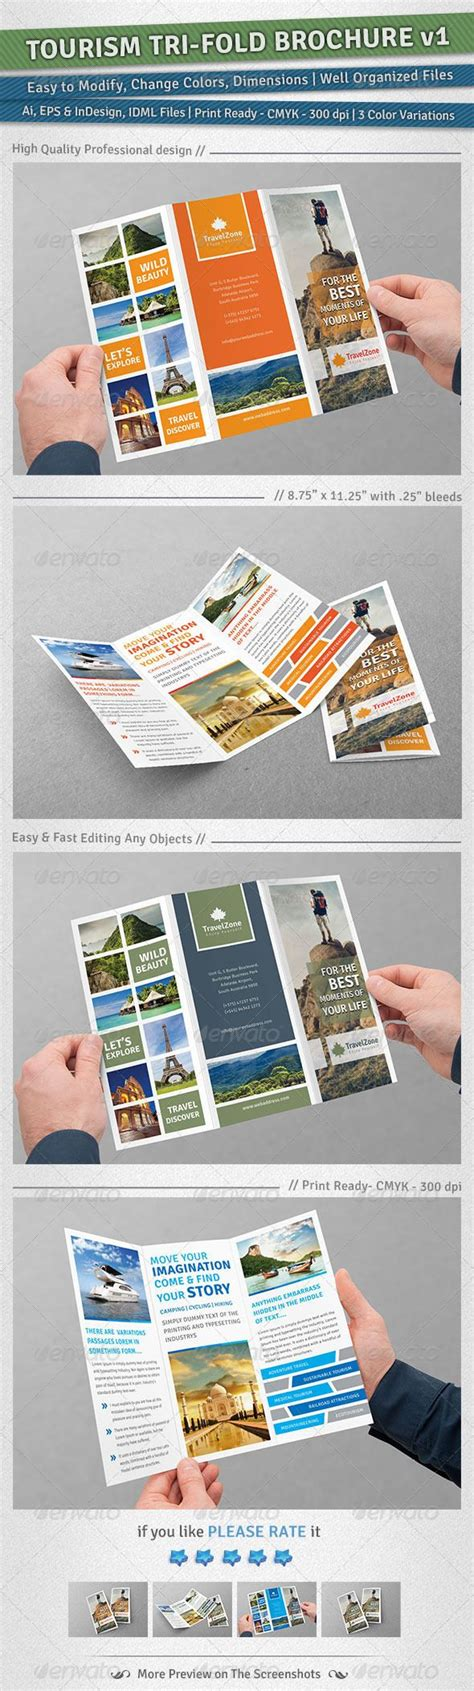 How To Make A Travel Brochure With Paper - 138 best images about tourism travel layout on